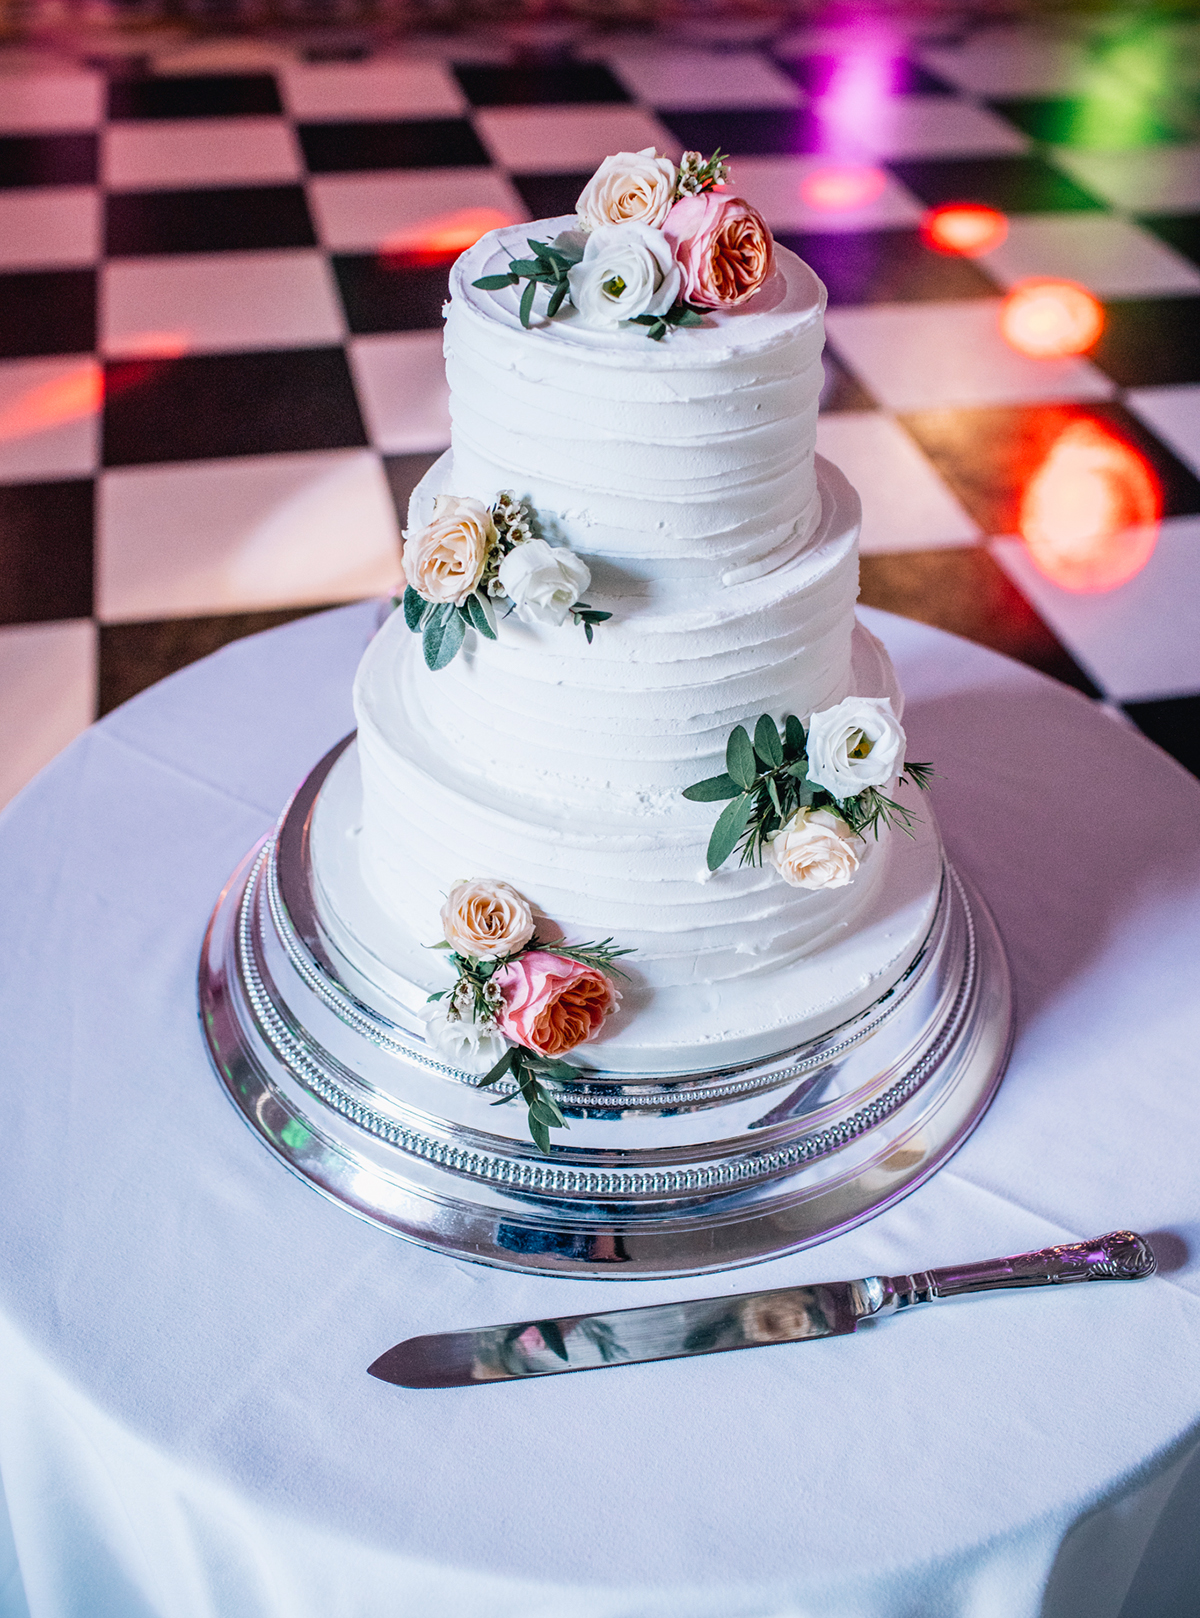 3 Tiers Archives The Cakery Leamington Spa